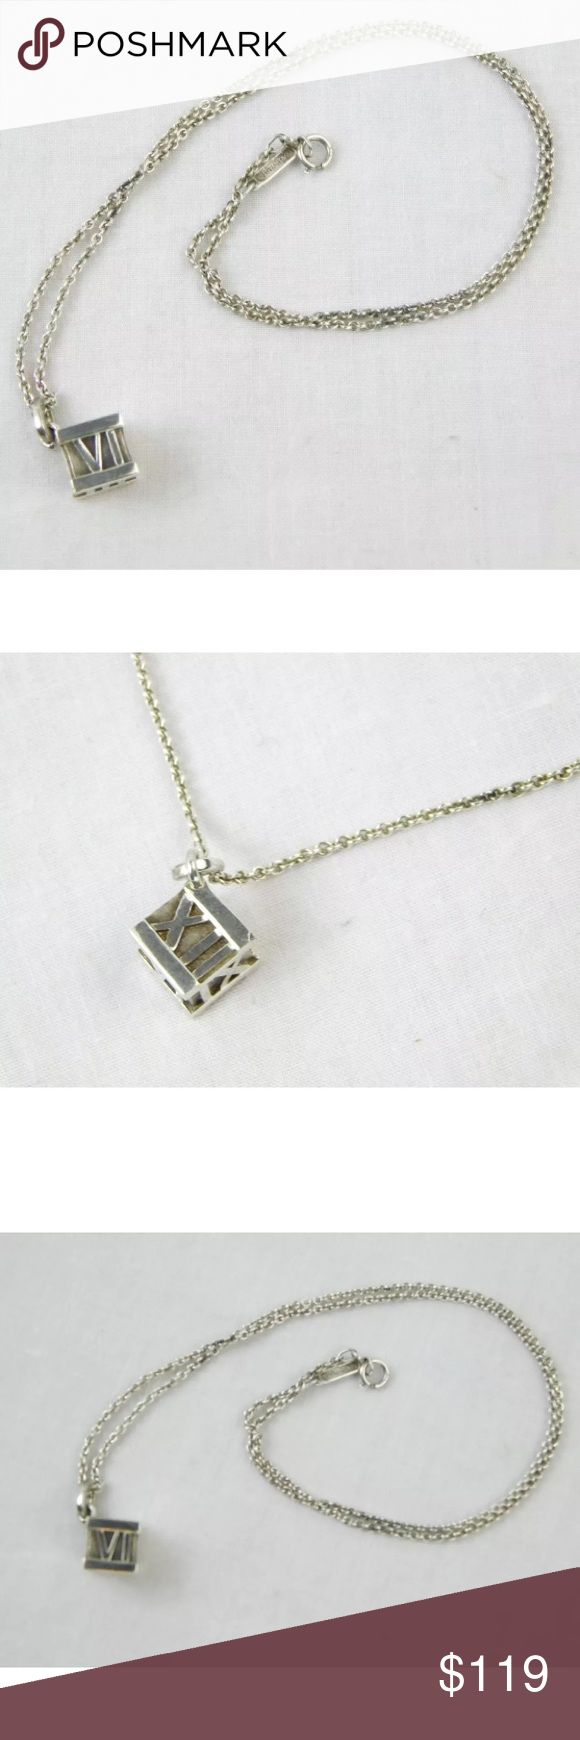 """Tiffany & Co. Sterling Roman Numeral Cube Necklace Tiffany & Co. Sterling Silver Roman Numeral Atlas Cube Necklace  Sterling silver 925  Roman Numeral Atlas cube design Hallmark """"2001 Tiffany & Co. 925"""" Lobster claw closure  Chain link necklace Made in Italy  Condition: Very faint surface scratches on front & back. Does not come with box or bag.  Dimensions Length: 16"""" Pendant: .25 x .3625""""  100% Authenticity Guarantee Tiffany & Co. Jewelry Necklaces"""